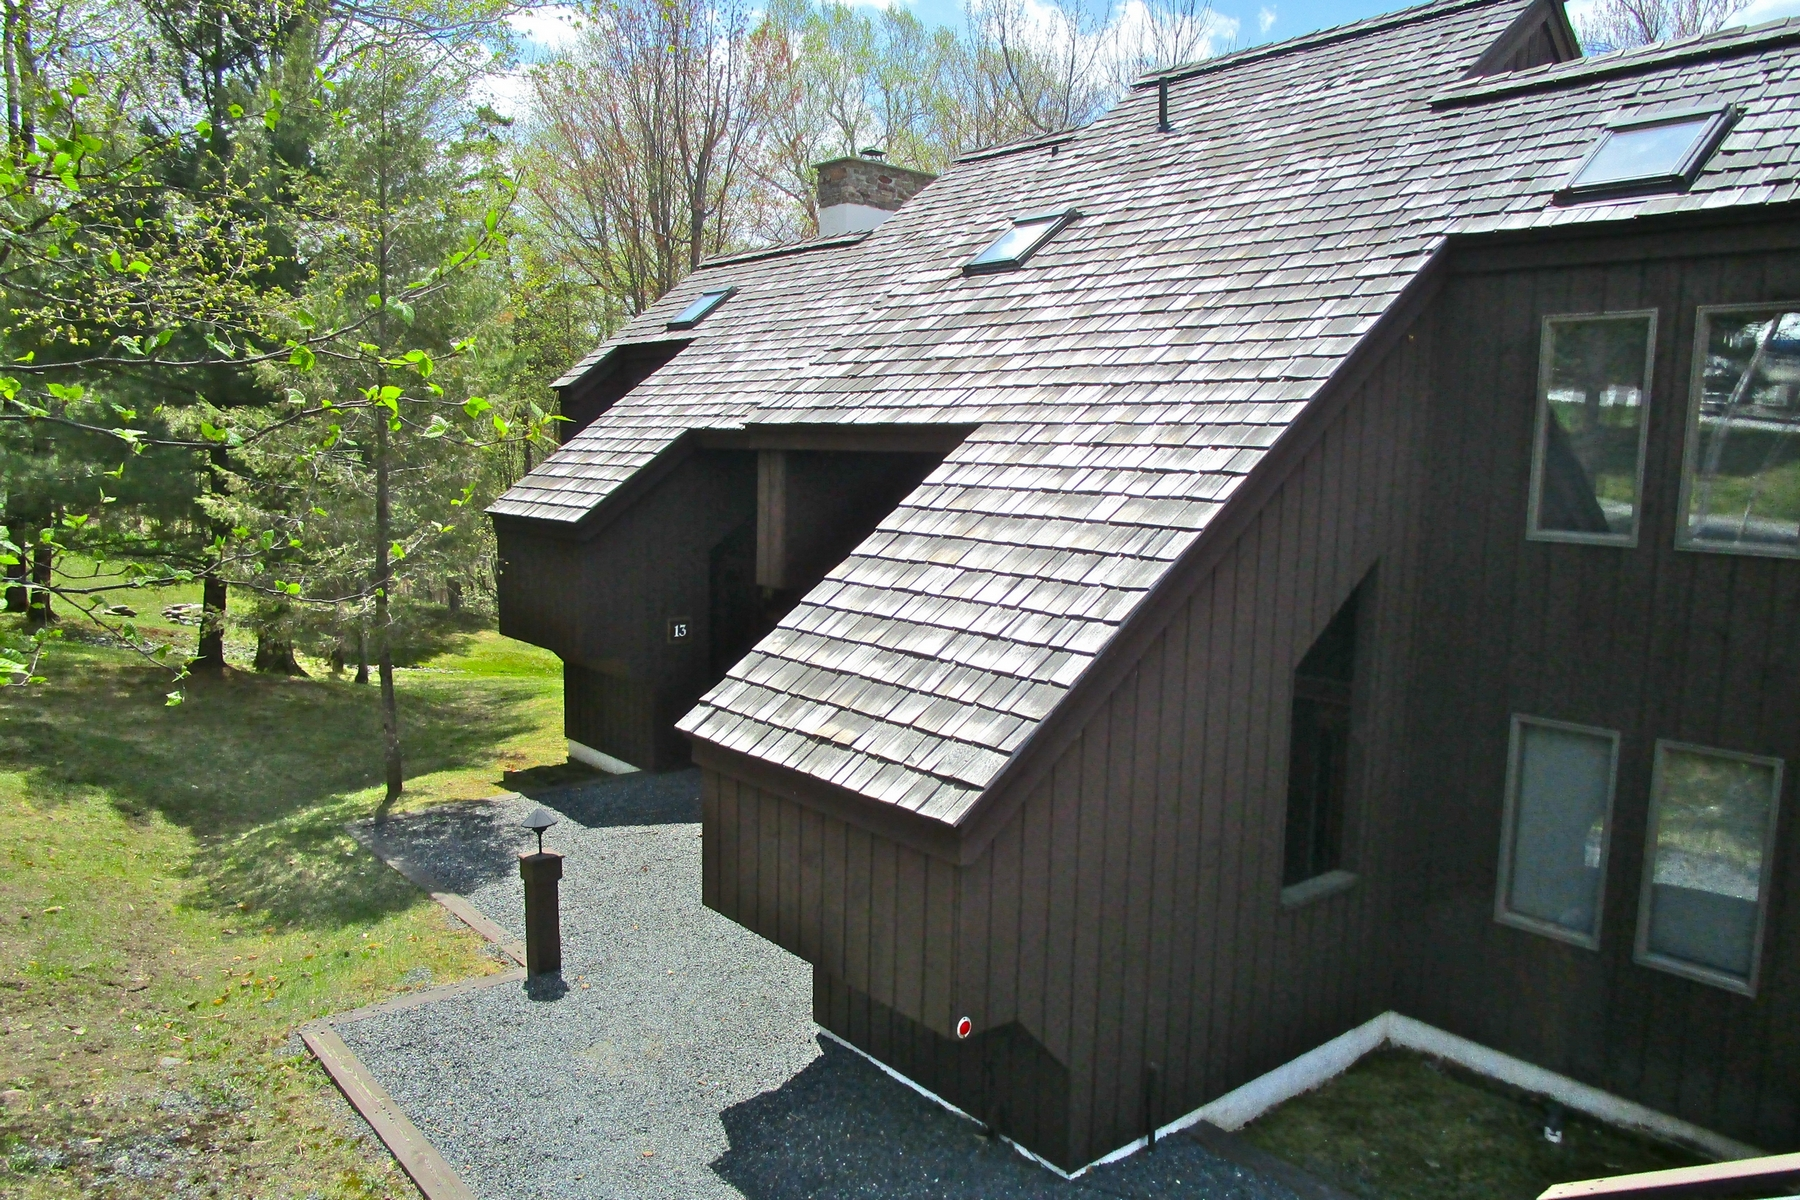 شقة بعمارة للـ Sale في Rare 5-bedroom, 4-bath townhouse at Hawk Resort. 894 East Ash 13 Plymouth, Vermont, 05056 United States